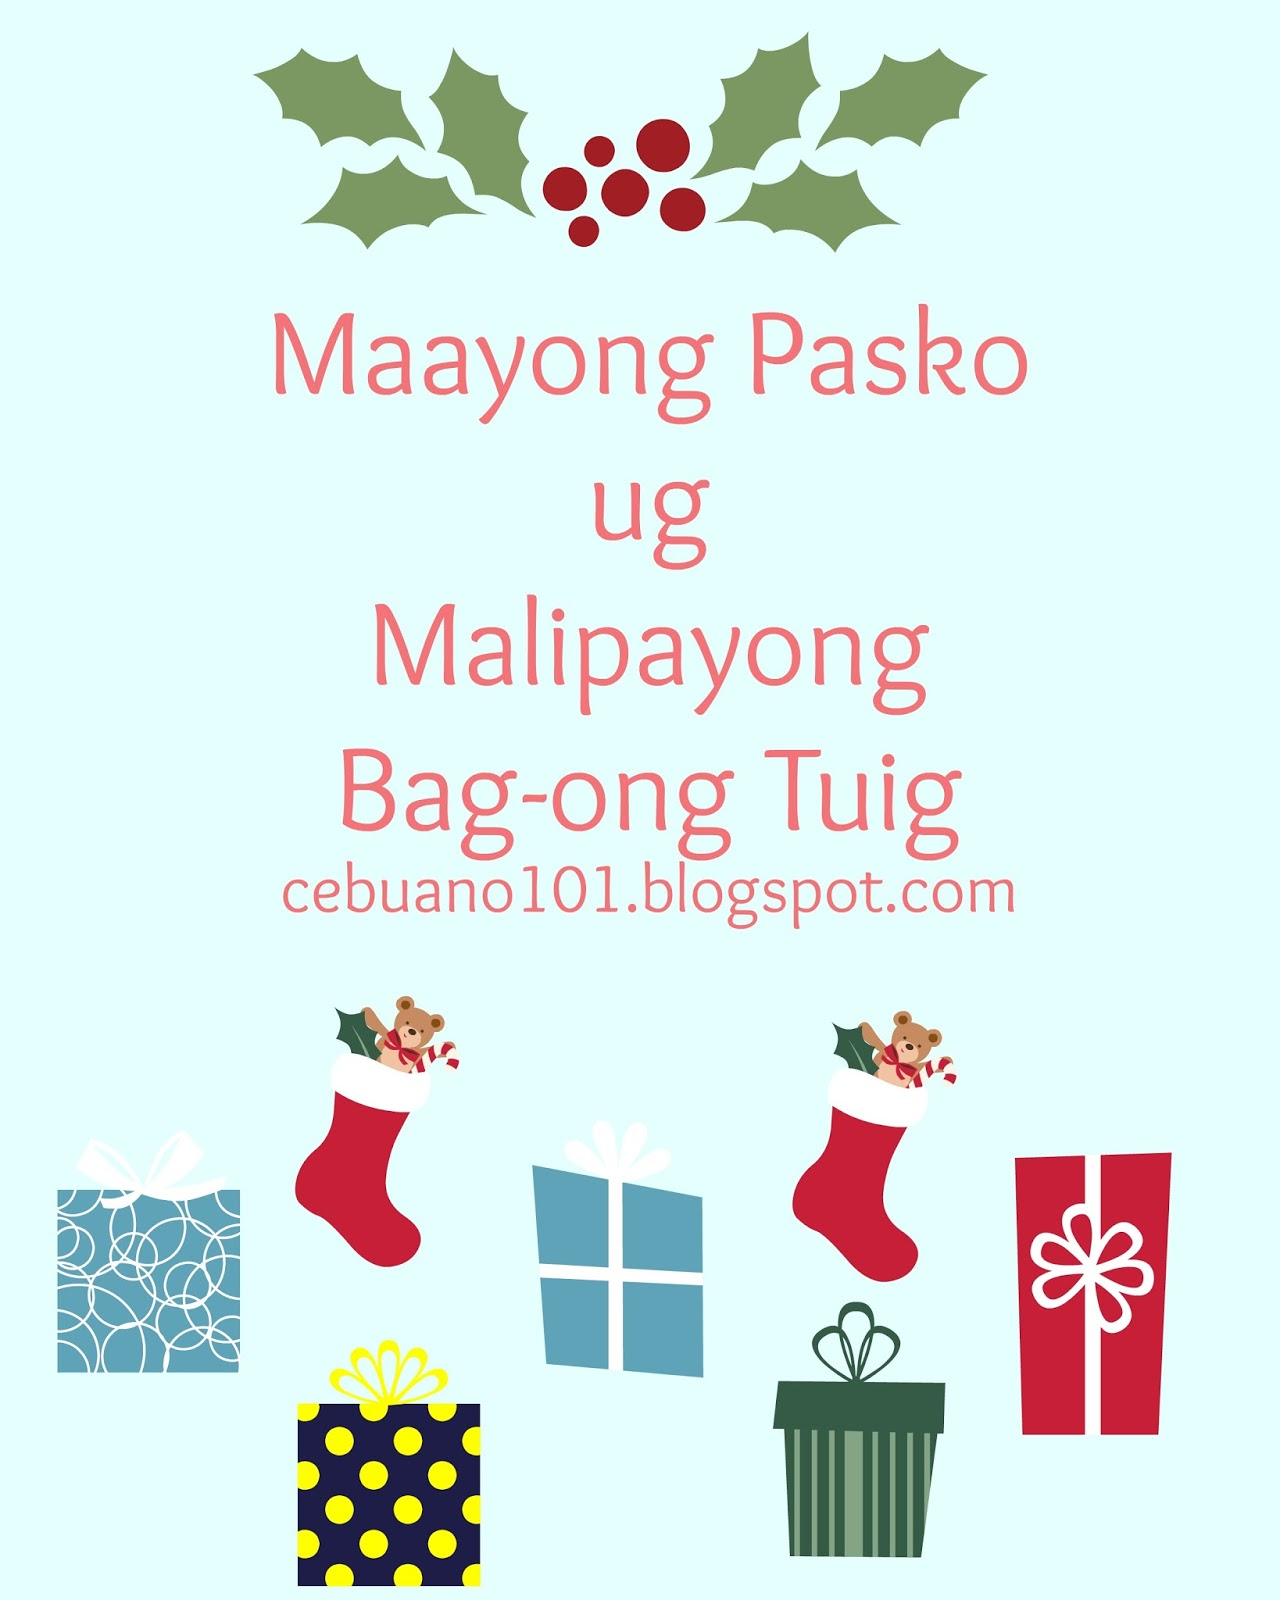 Cebuano101 merry christmas and happy new year in bisaya heres how to greet merry christmas and happy new year in bisaya m4hsunfo